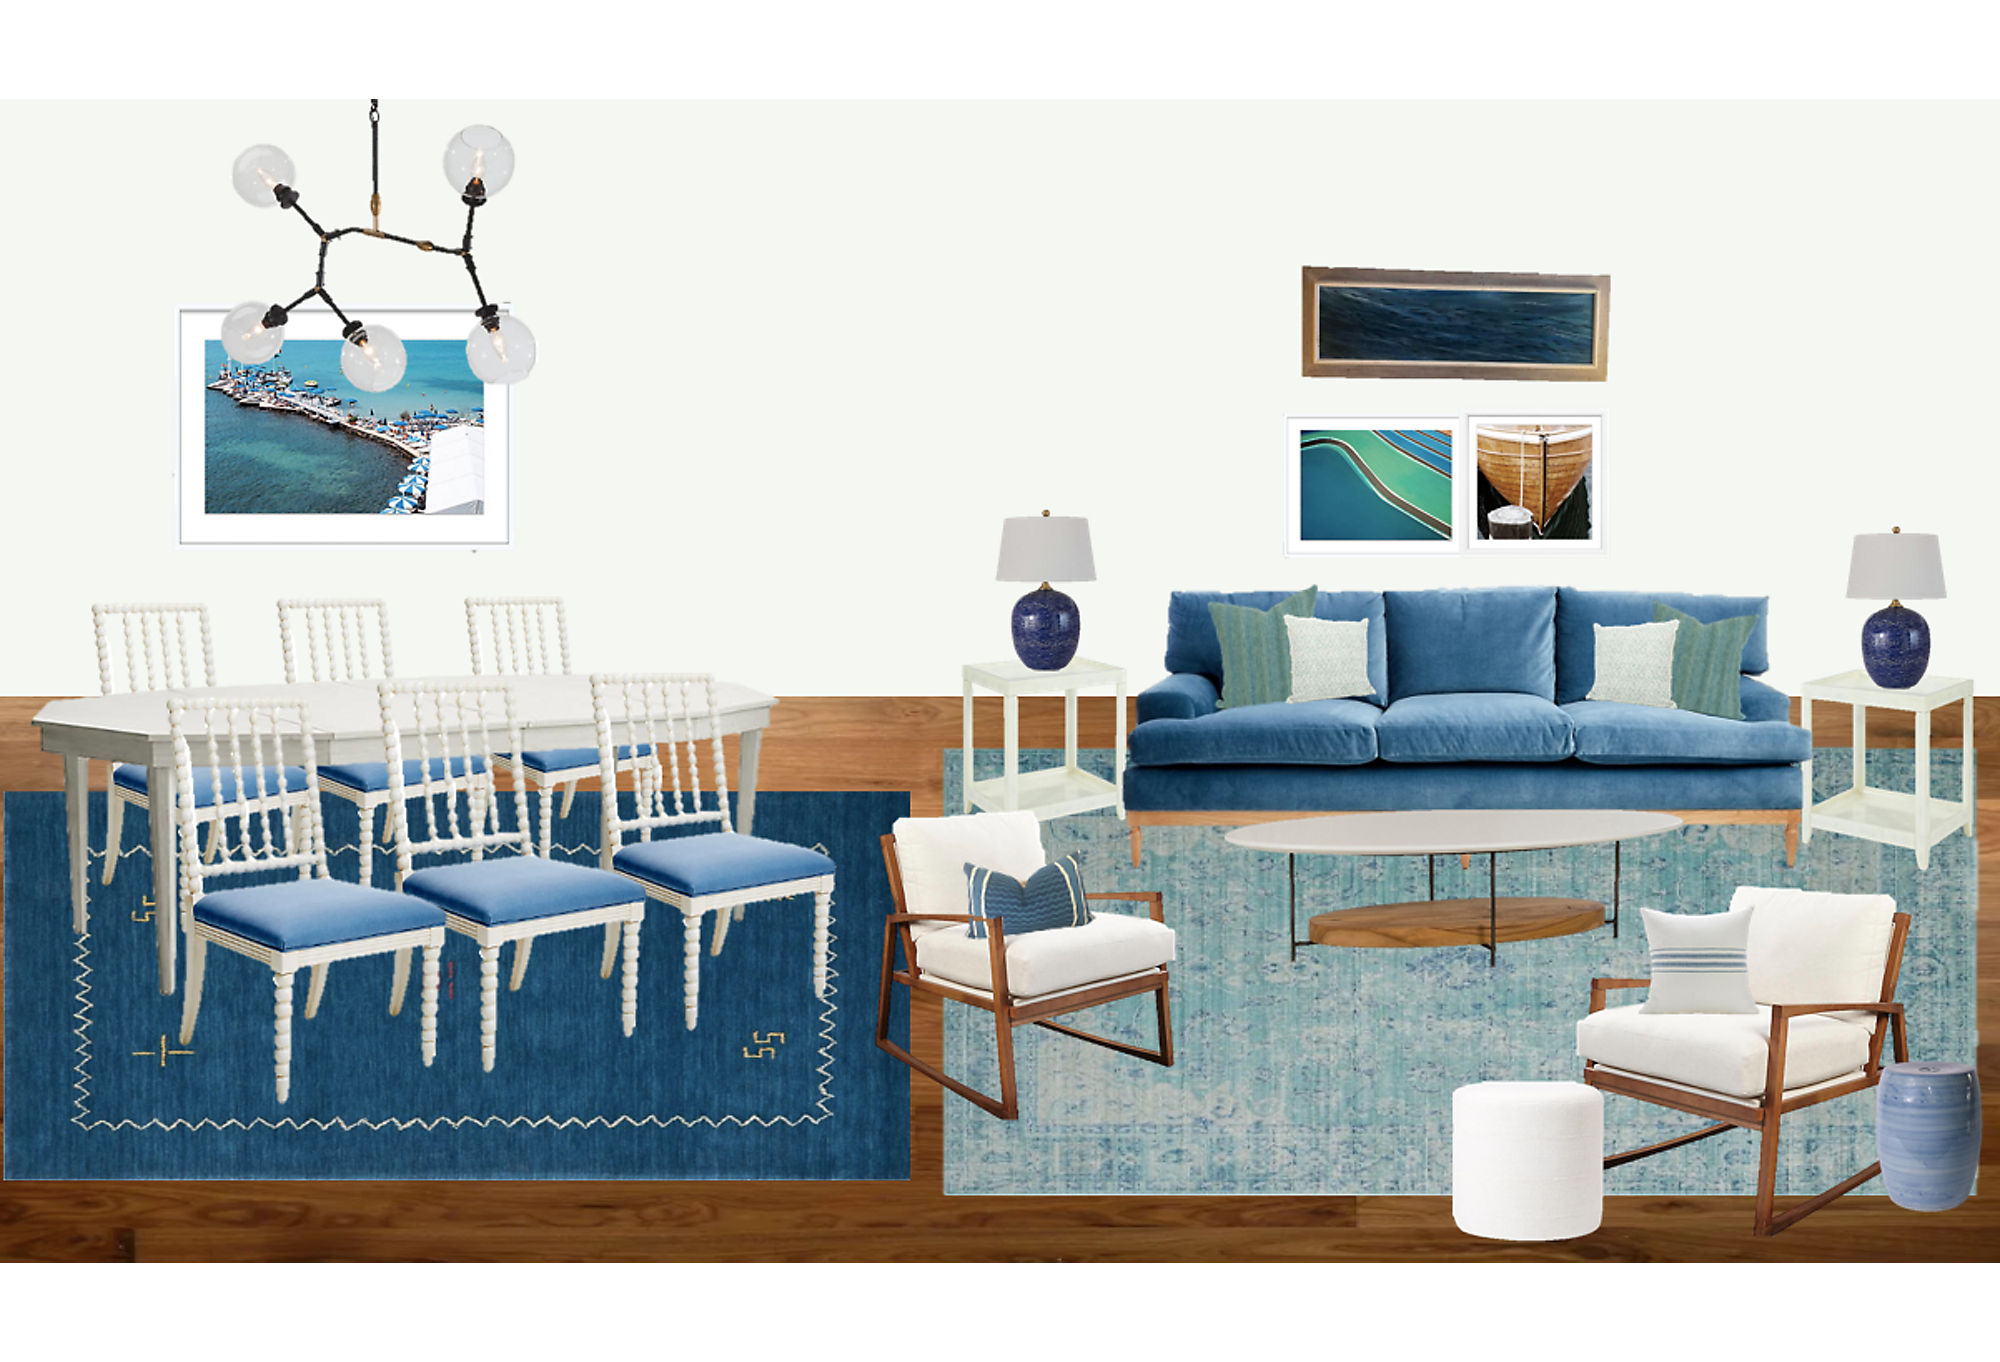 A moodboard Shannon created to show her vision fora client's apartment